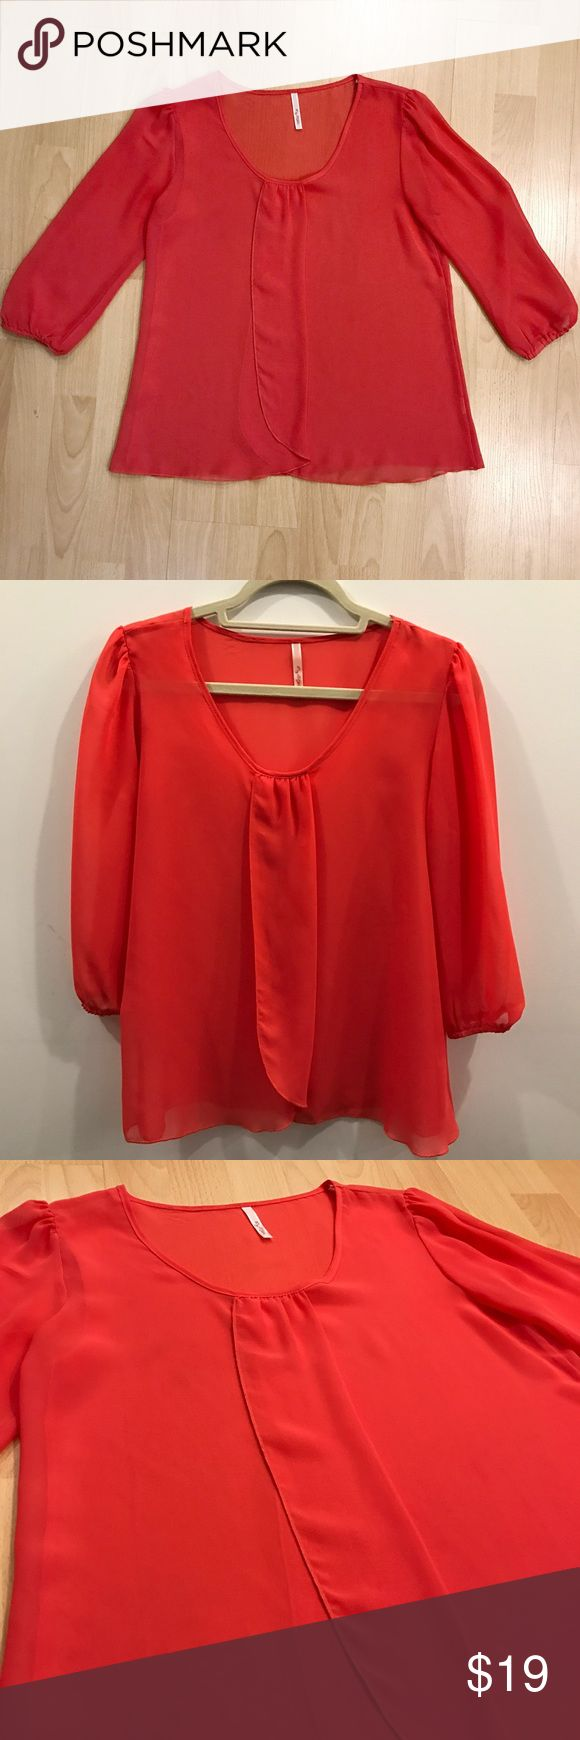 Bright Coral Blouse Unique flowy blouse in bright coral. Sheer material that overlaps and opens up in the front. Three-quarter sleeves. No flaws! Tops Blouses